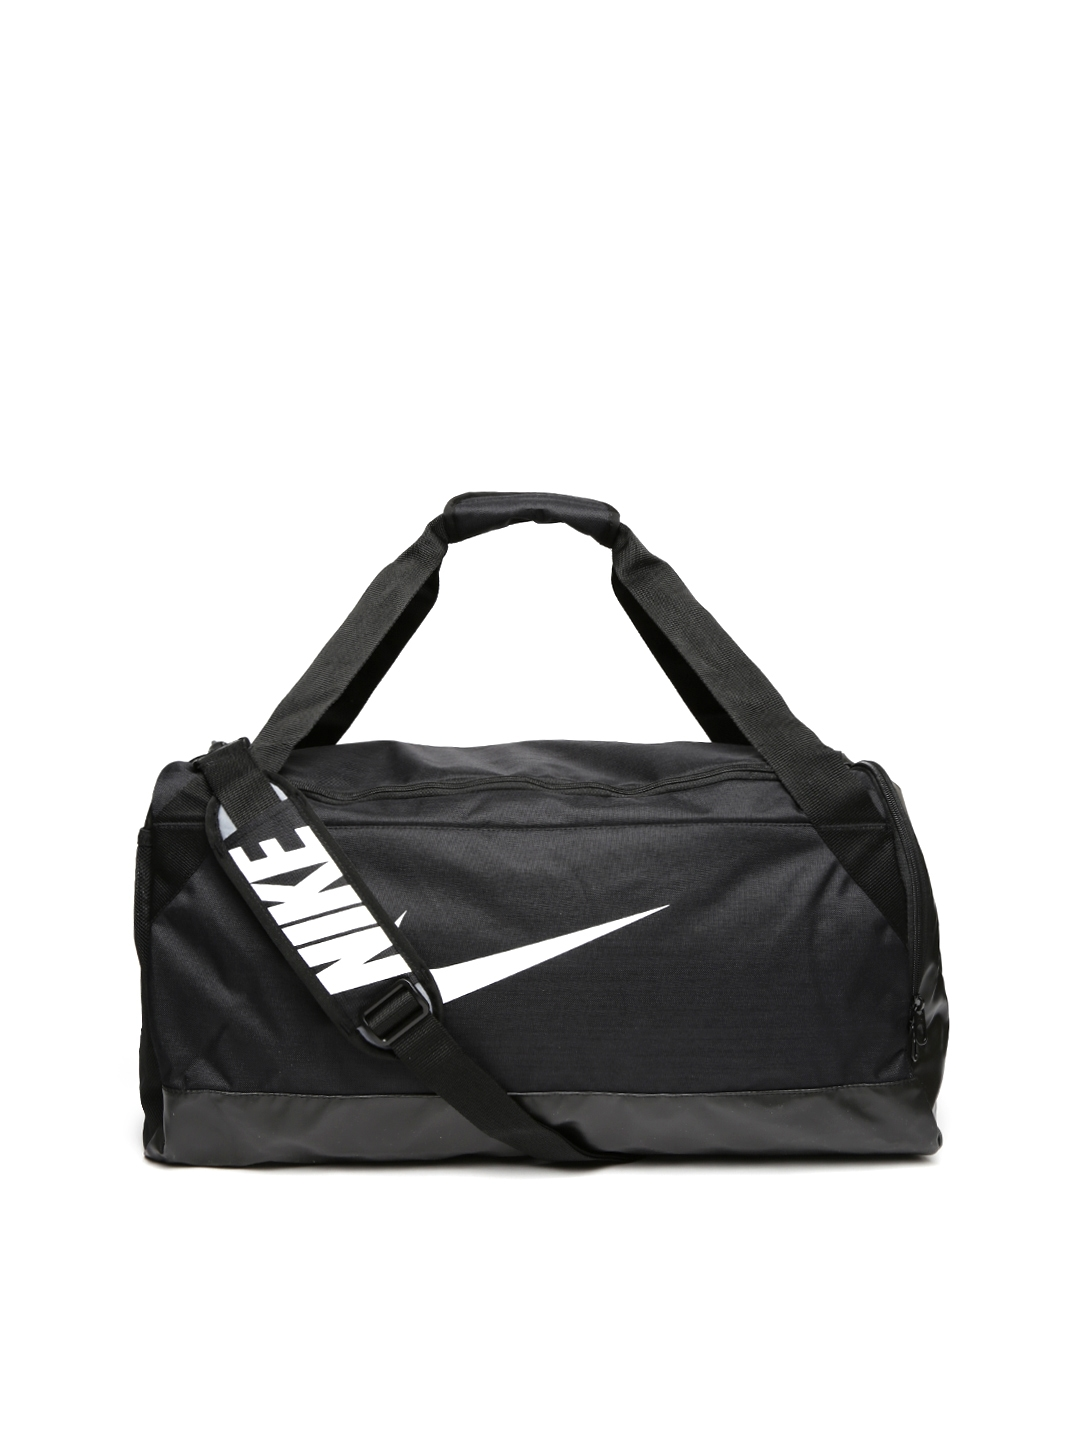 977b9f920d0 Buy Nike Unisex Black BRSLA M Training Duffel Bag - Duffel Bag for ...